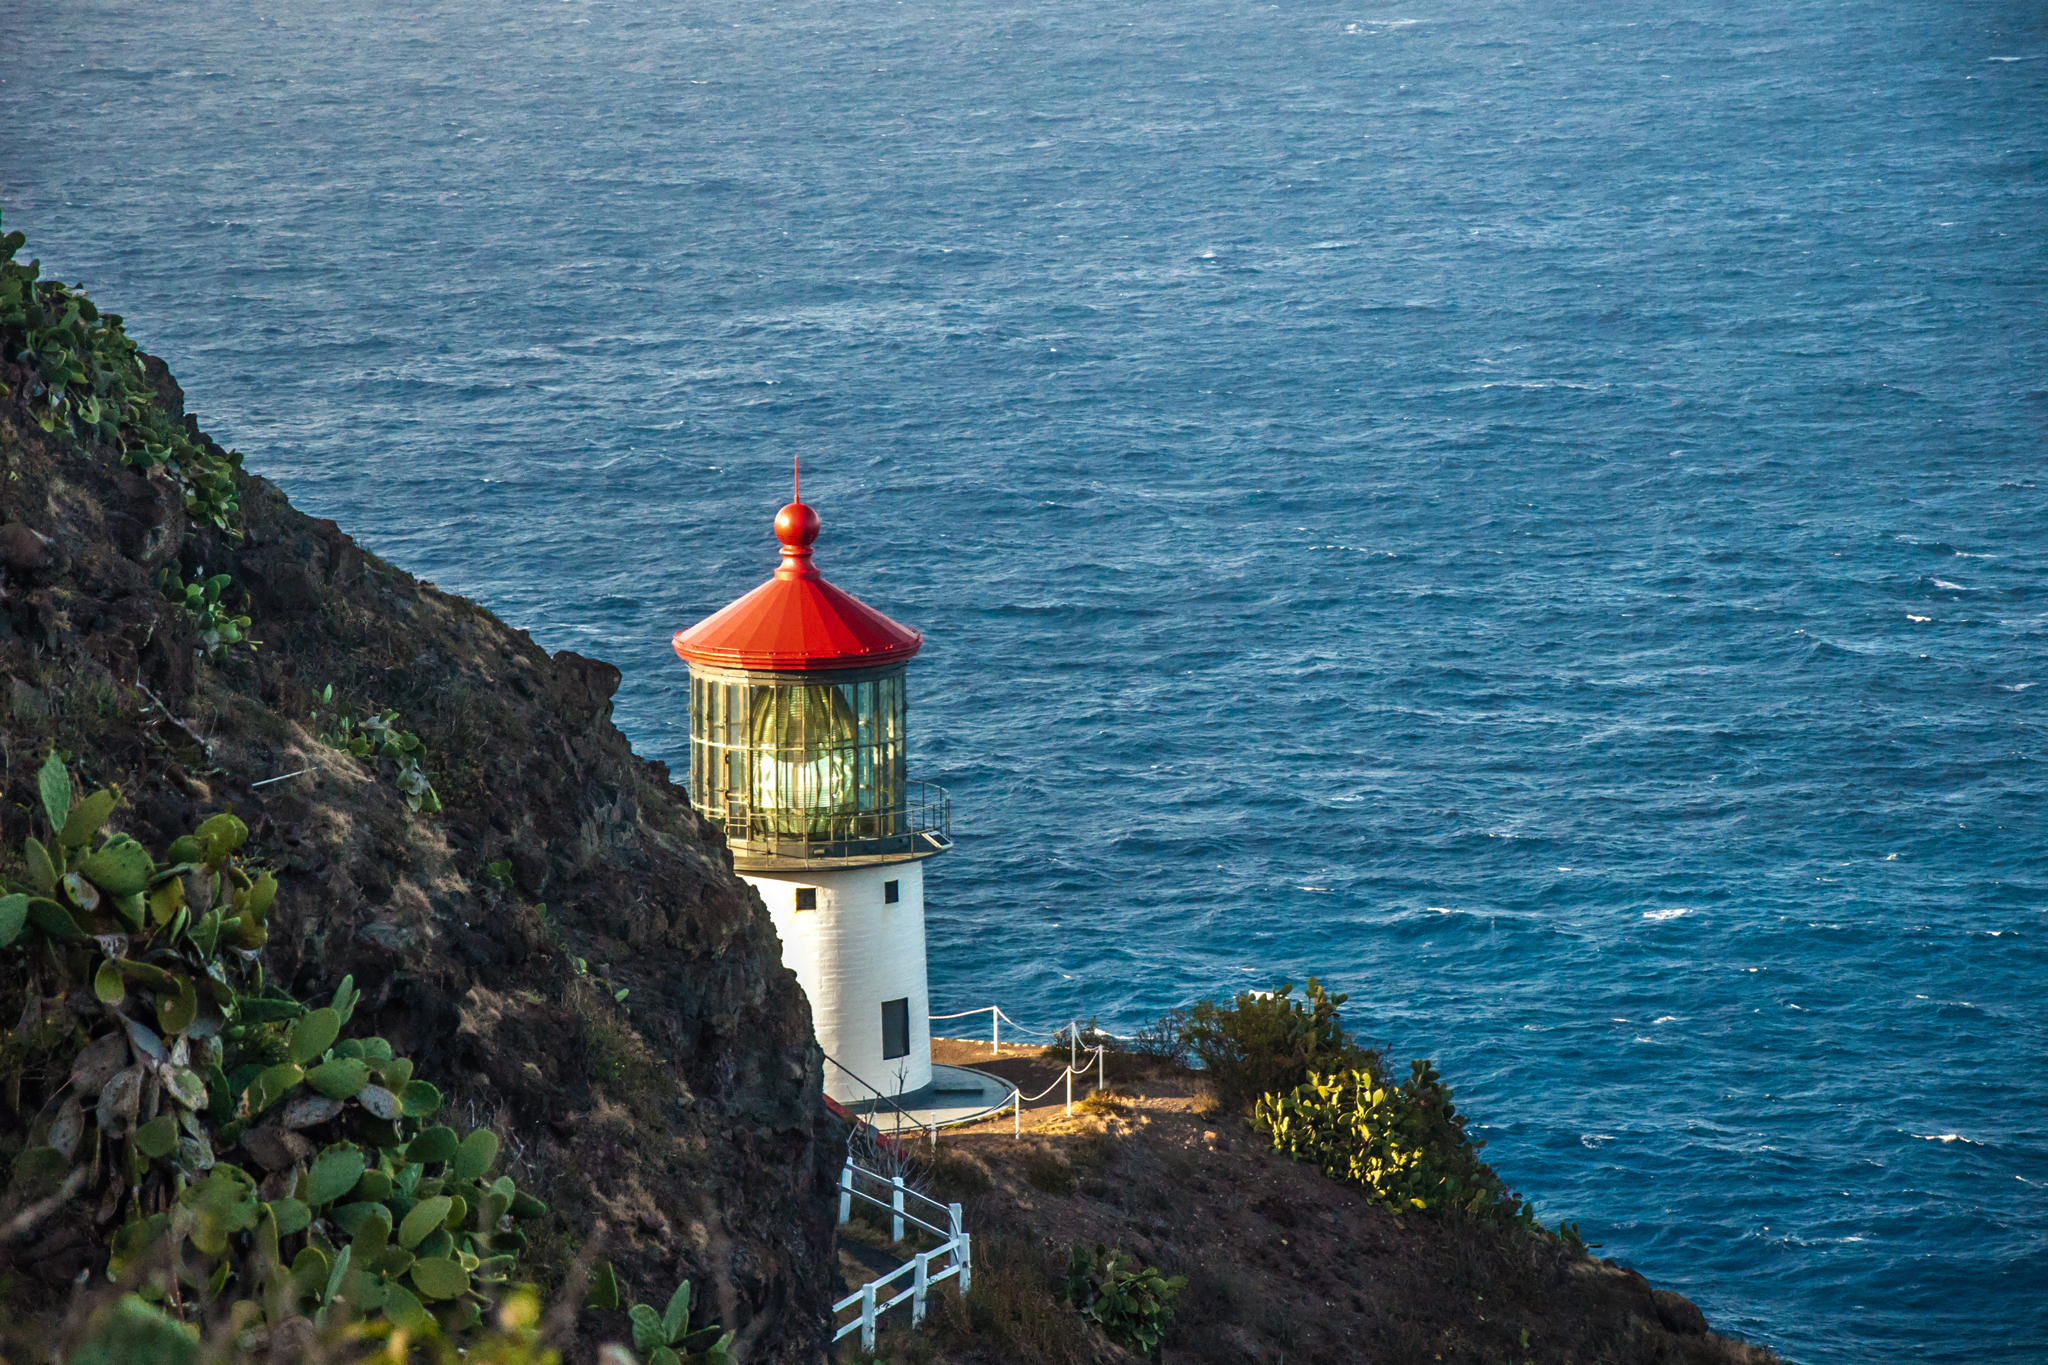 Makapu'u Lighthouse (May 2010)